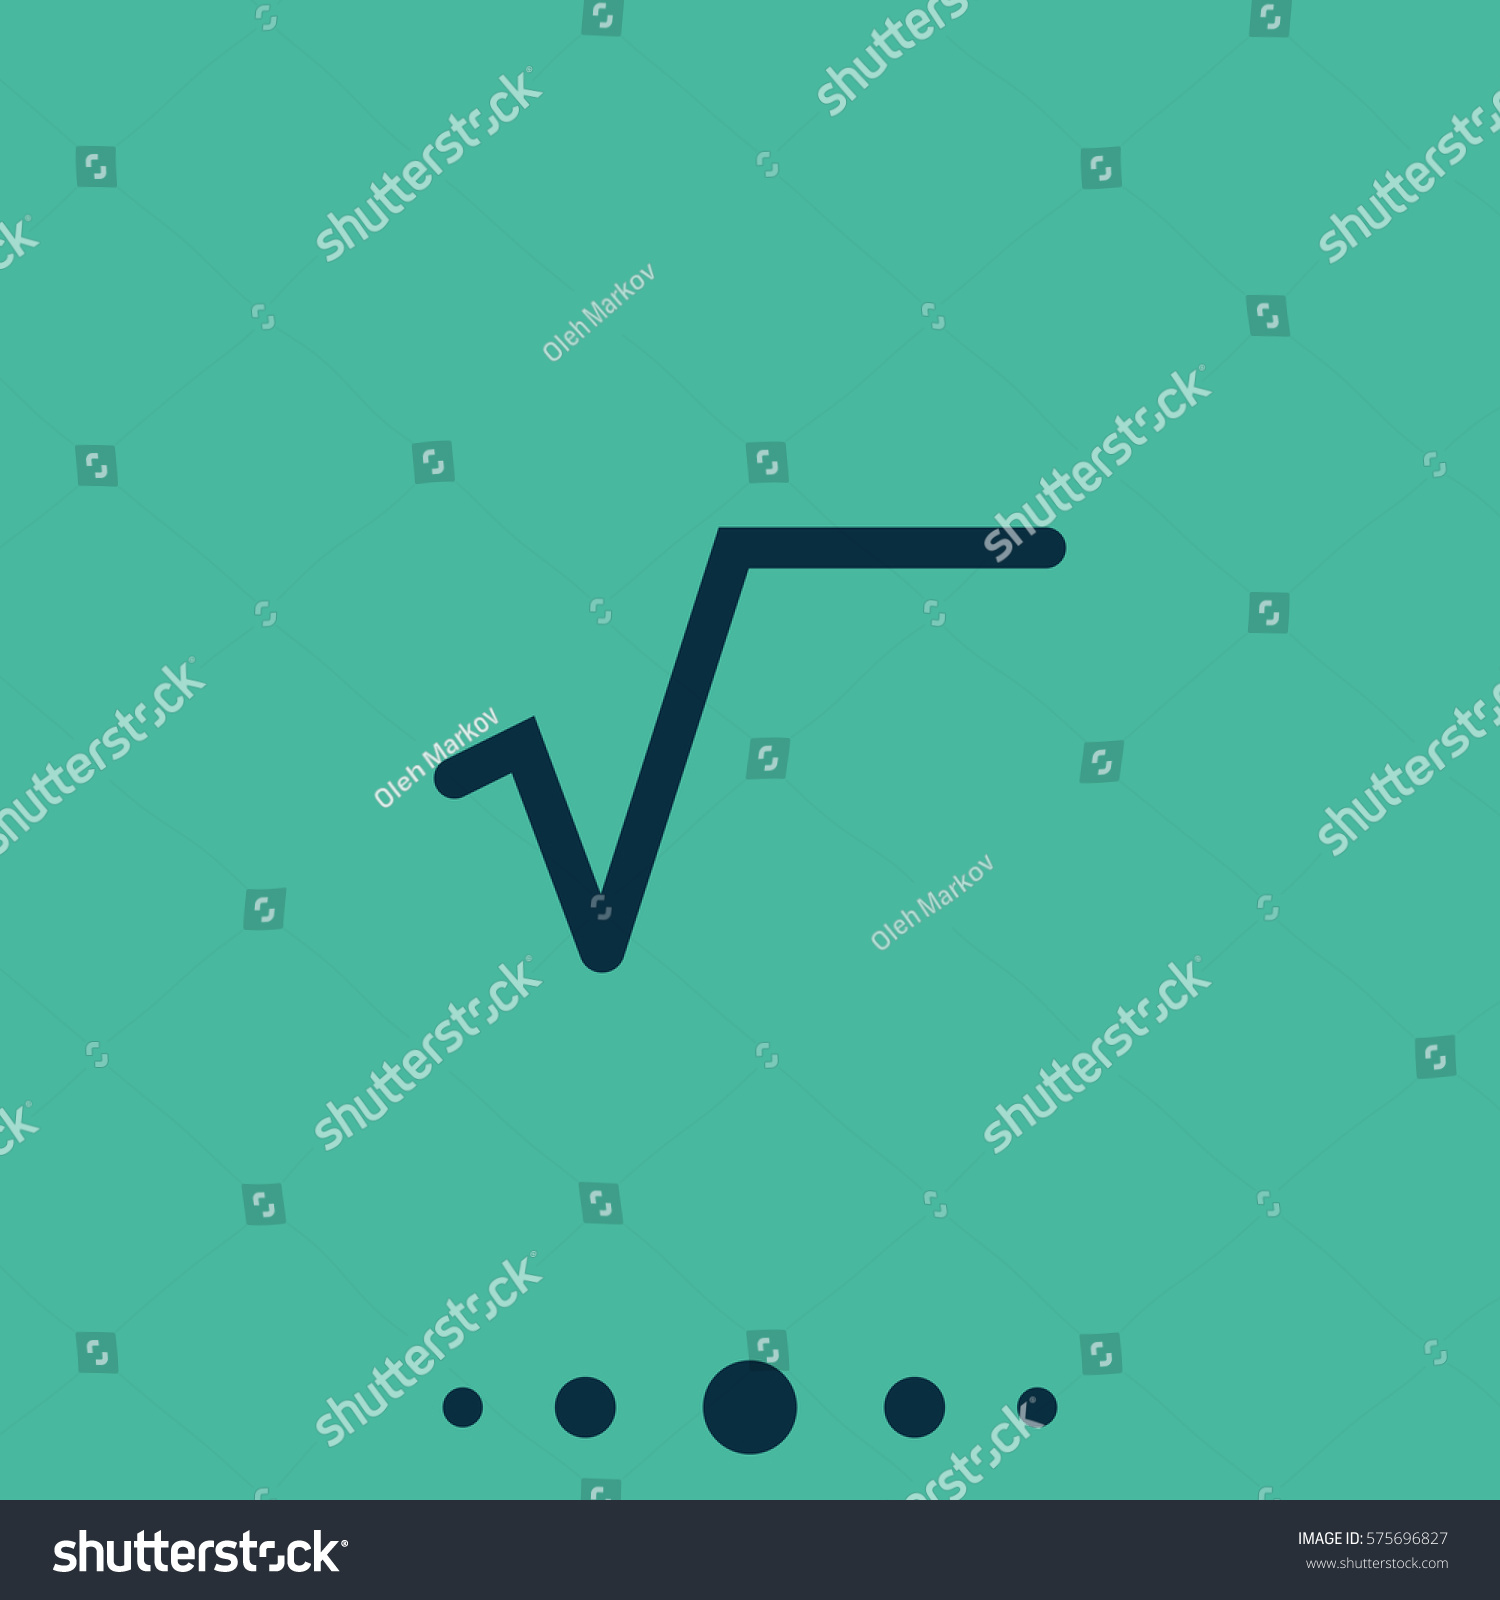 Square root symbol flat icon stock illustration 575696827 shutterstock square root symbol flat icon buycottarizona Images